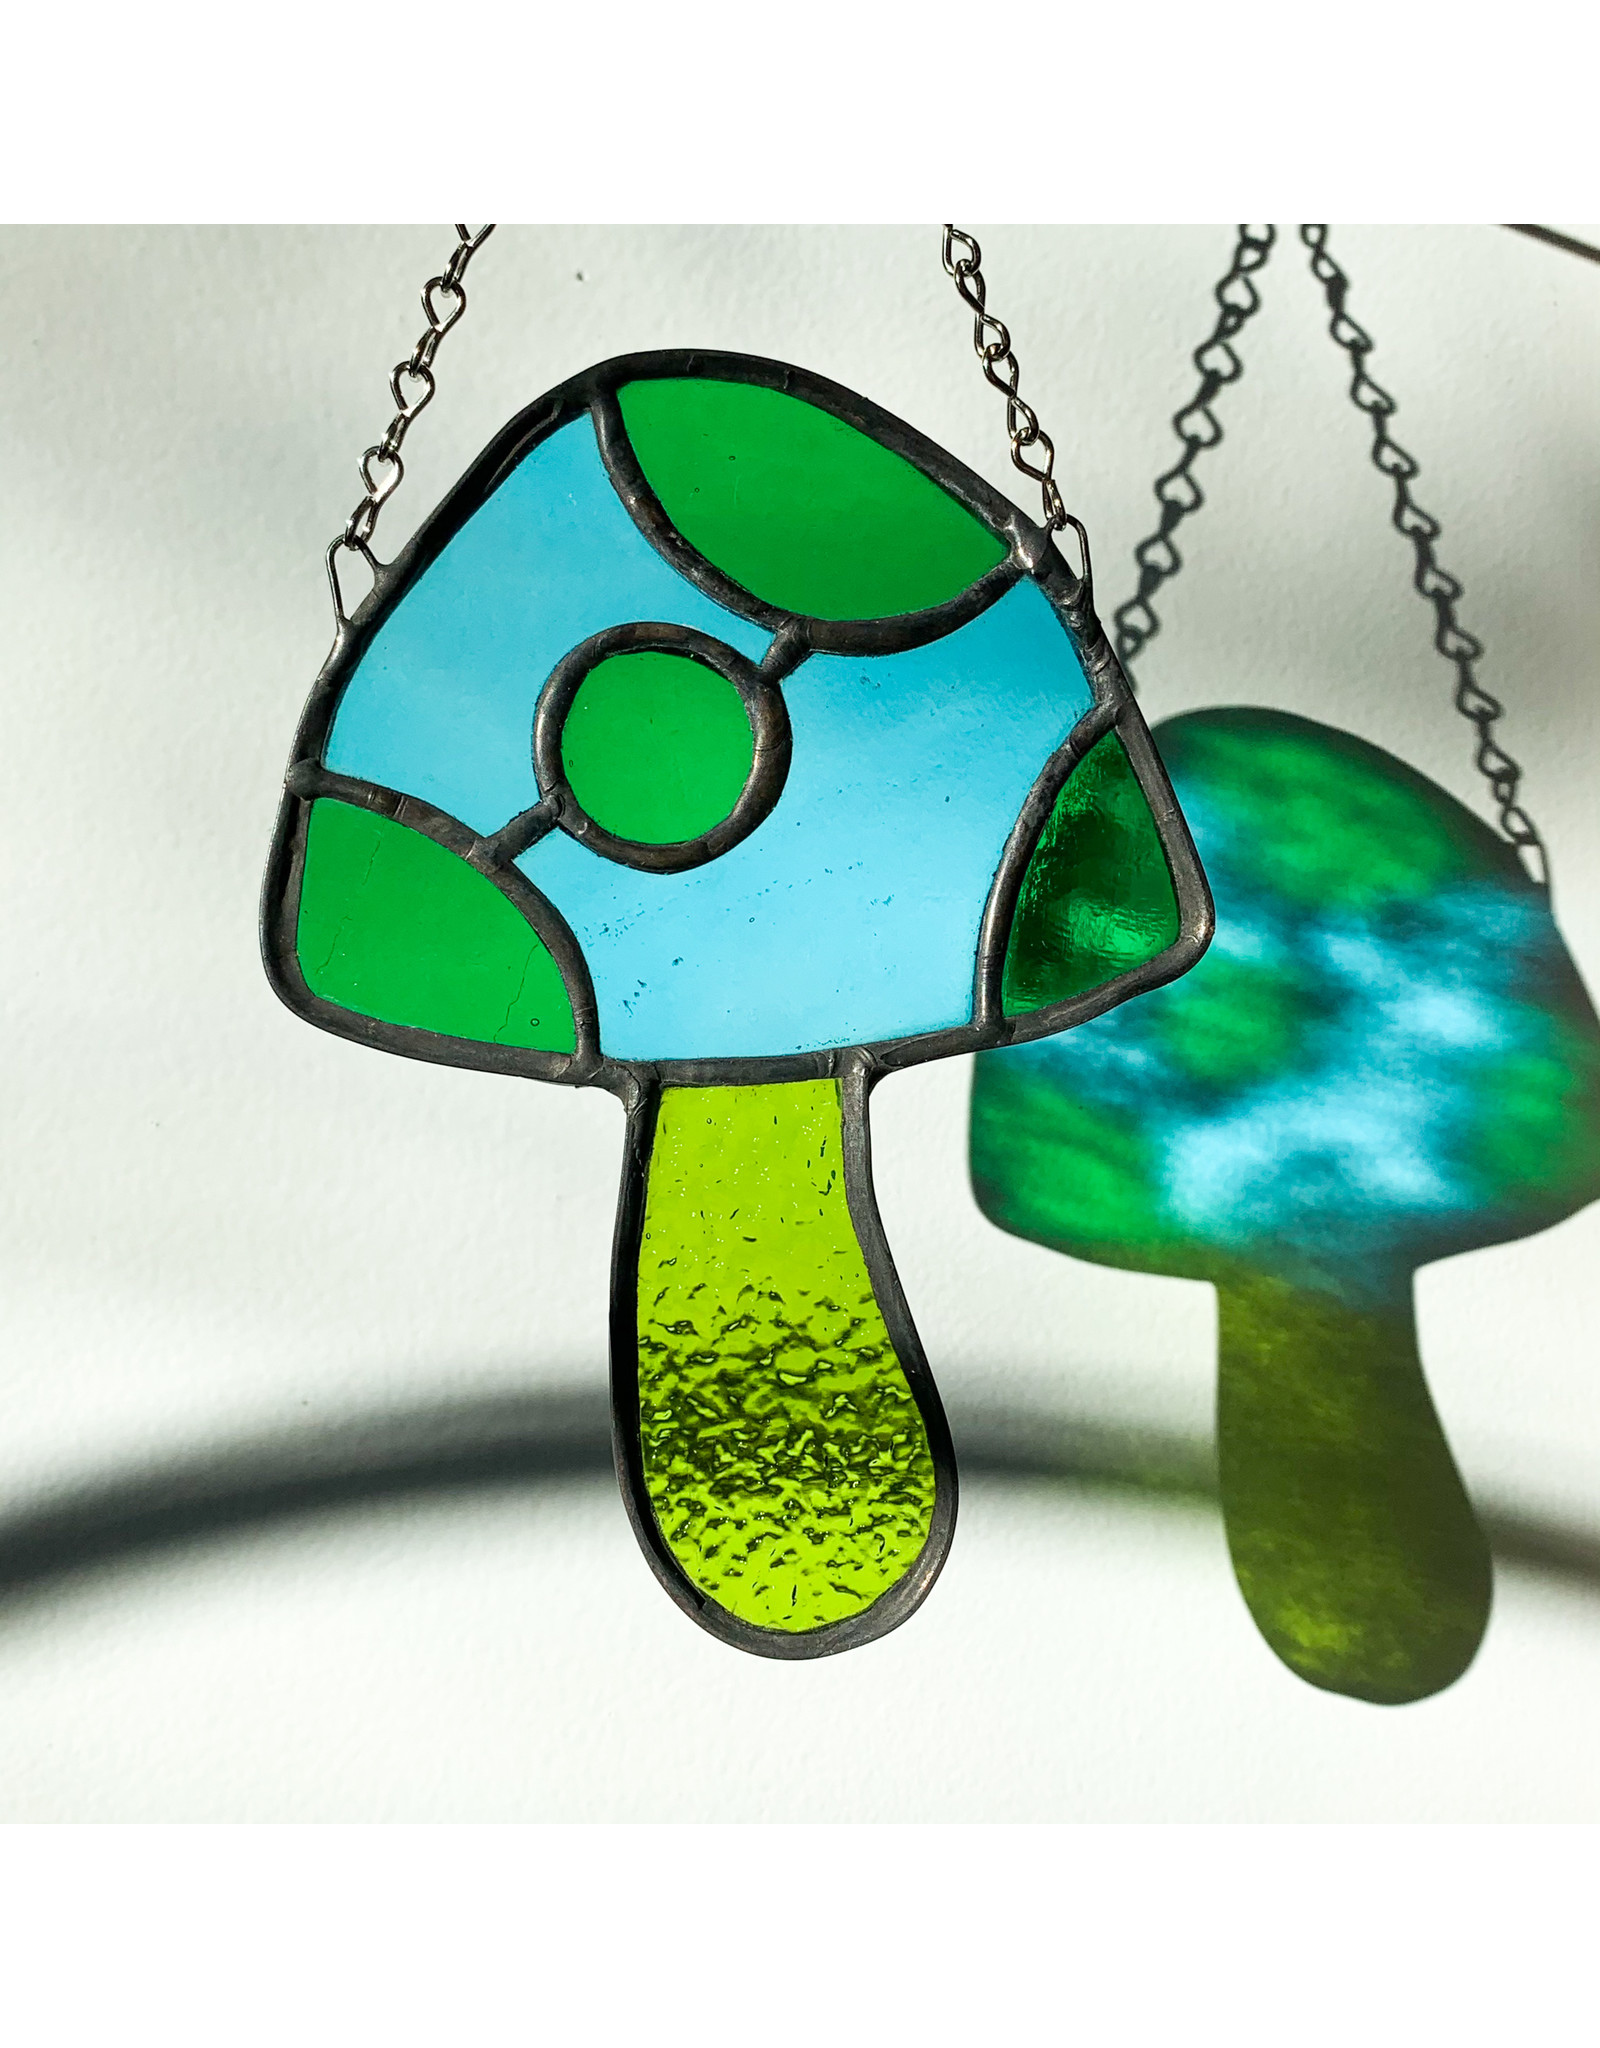 Reverberation Stained Glass - Consignment Mushroom  Green Blue Consignment